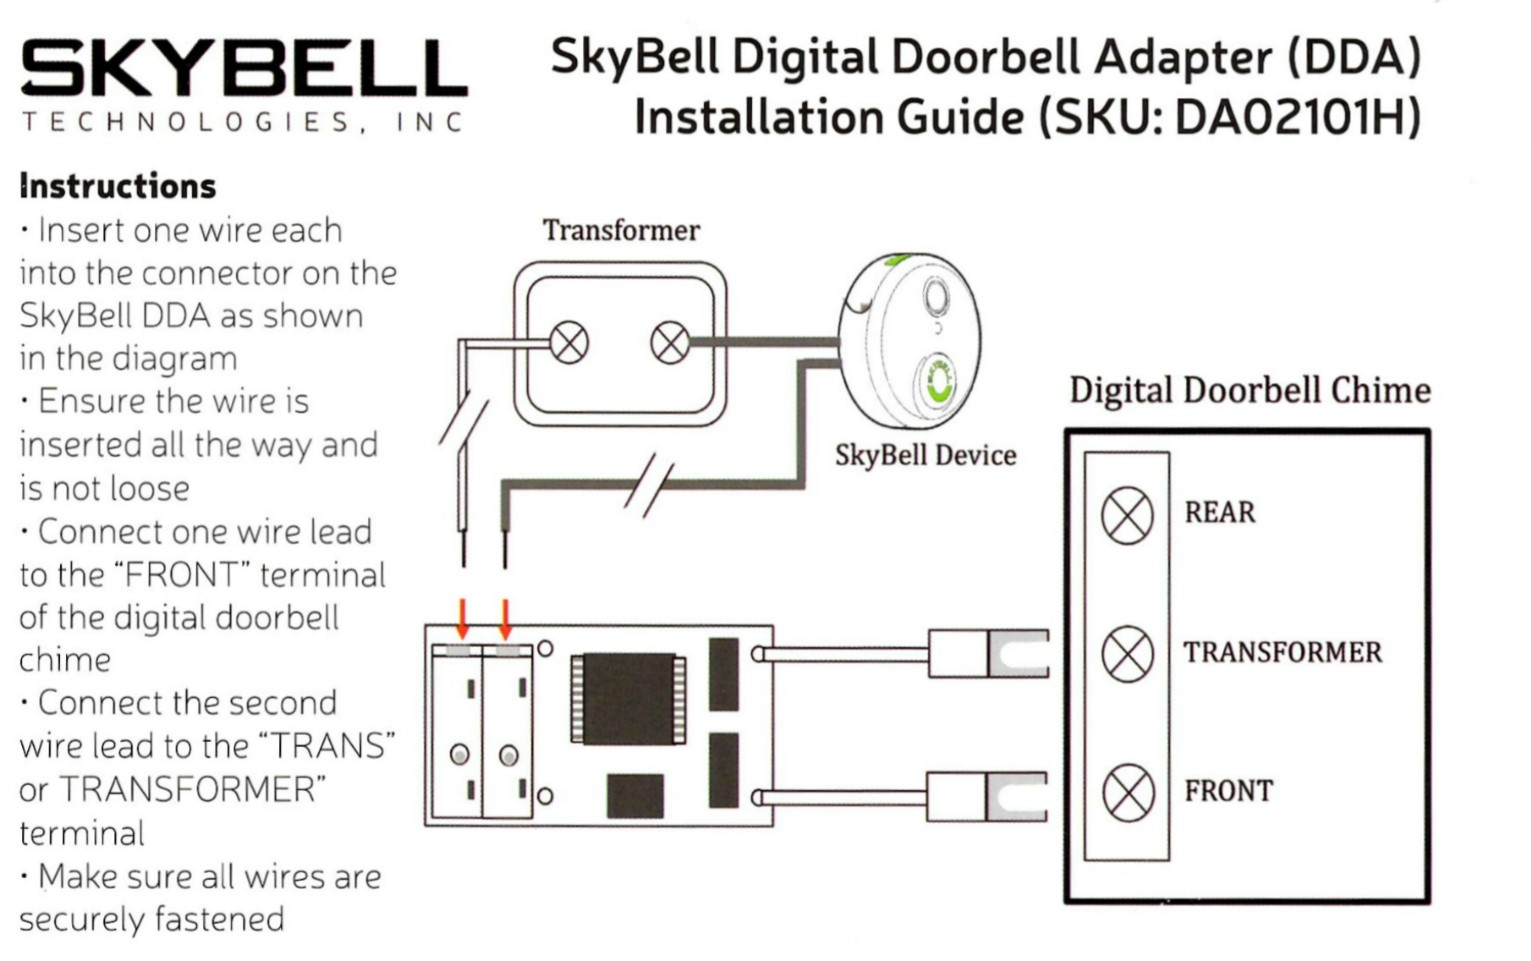 do i need a digital doorbell adapter? how do i install it? skybell types of home wiring dda_instructions jpg digital doorbell adapter installation video